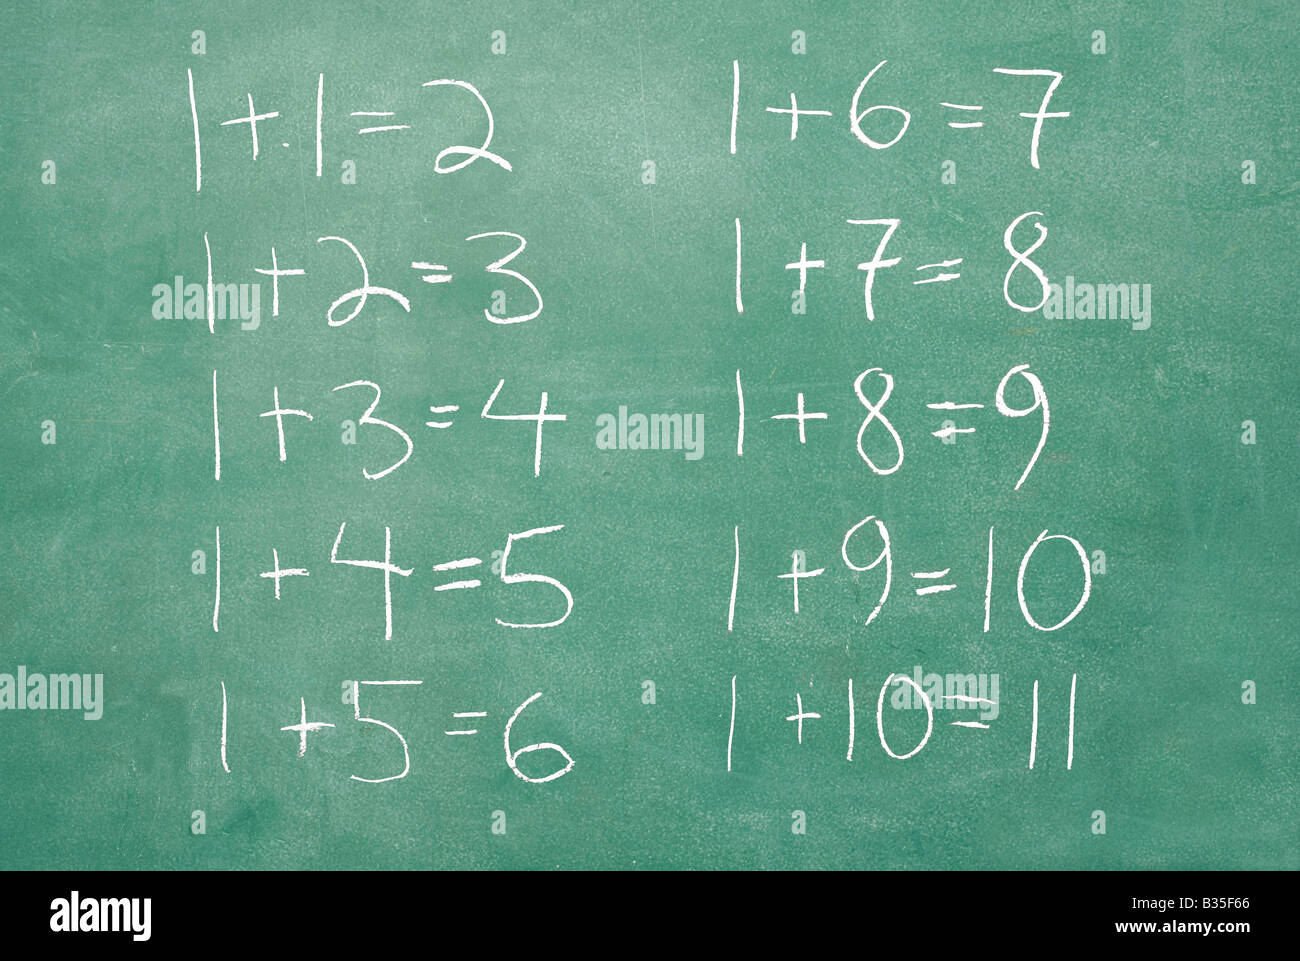 Old chalkboard with very extremely basic math problems and solutions ...